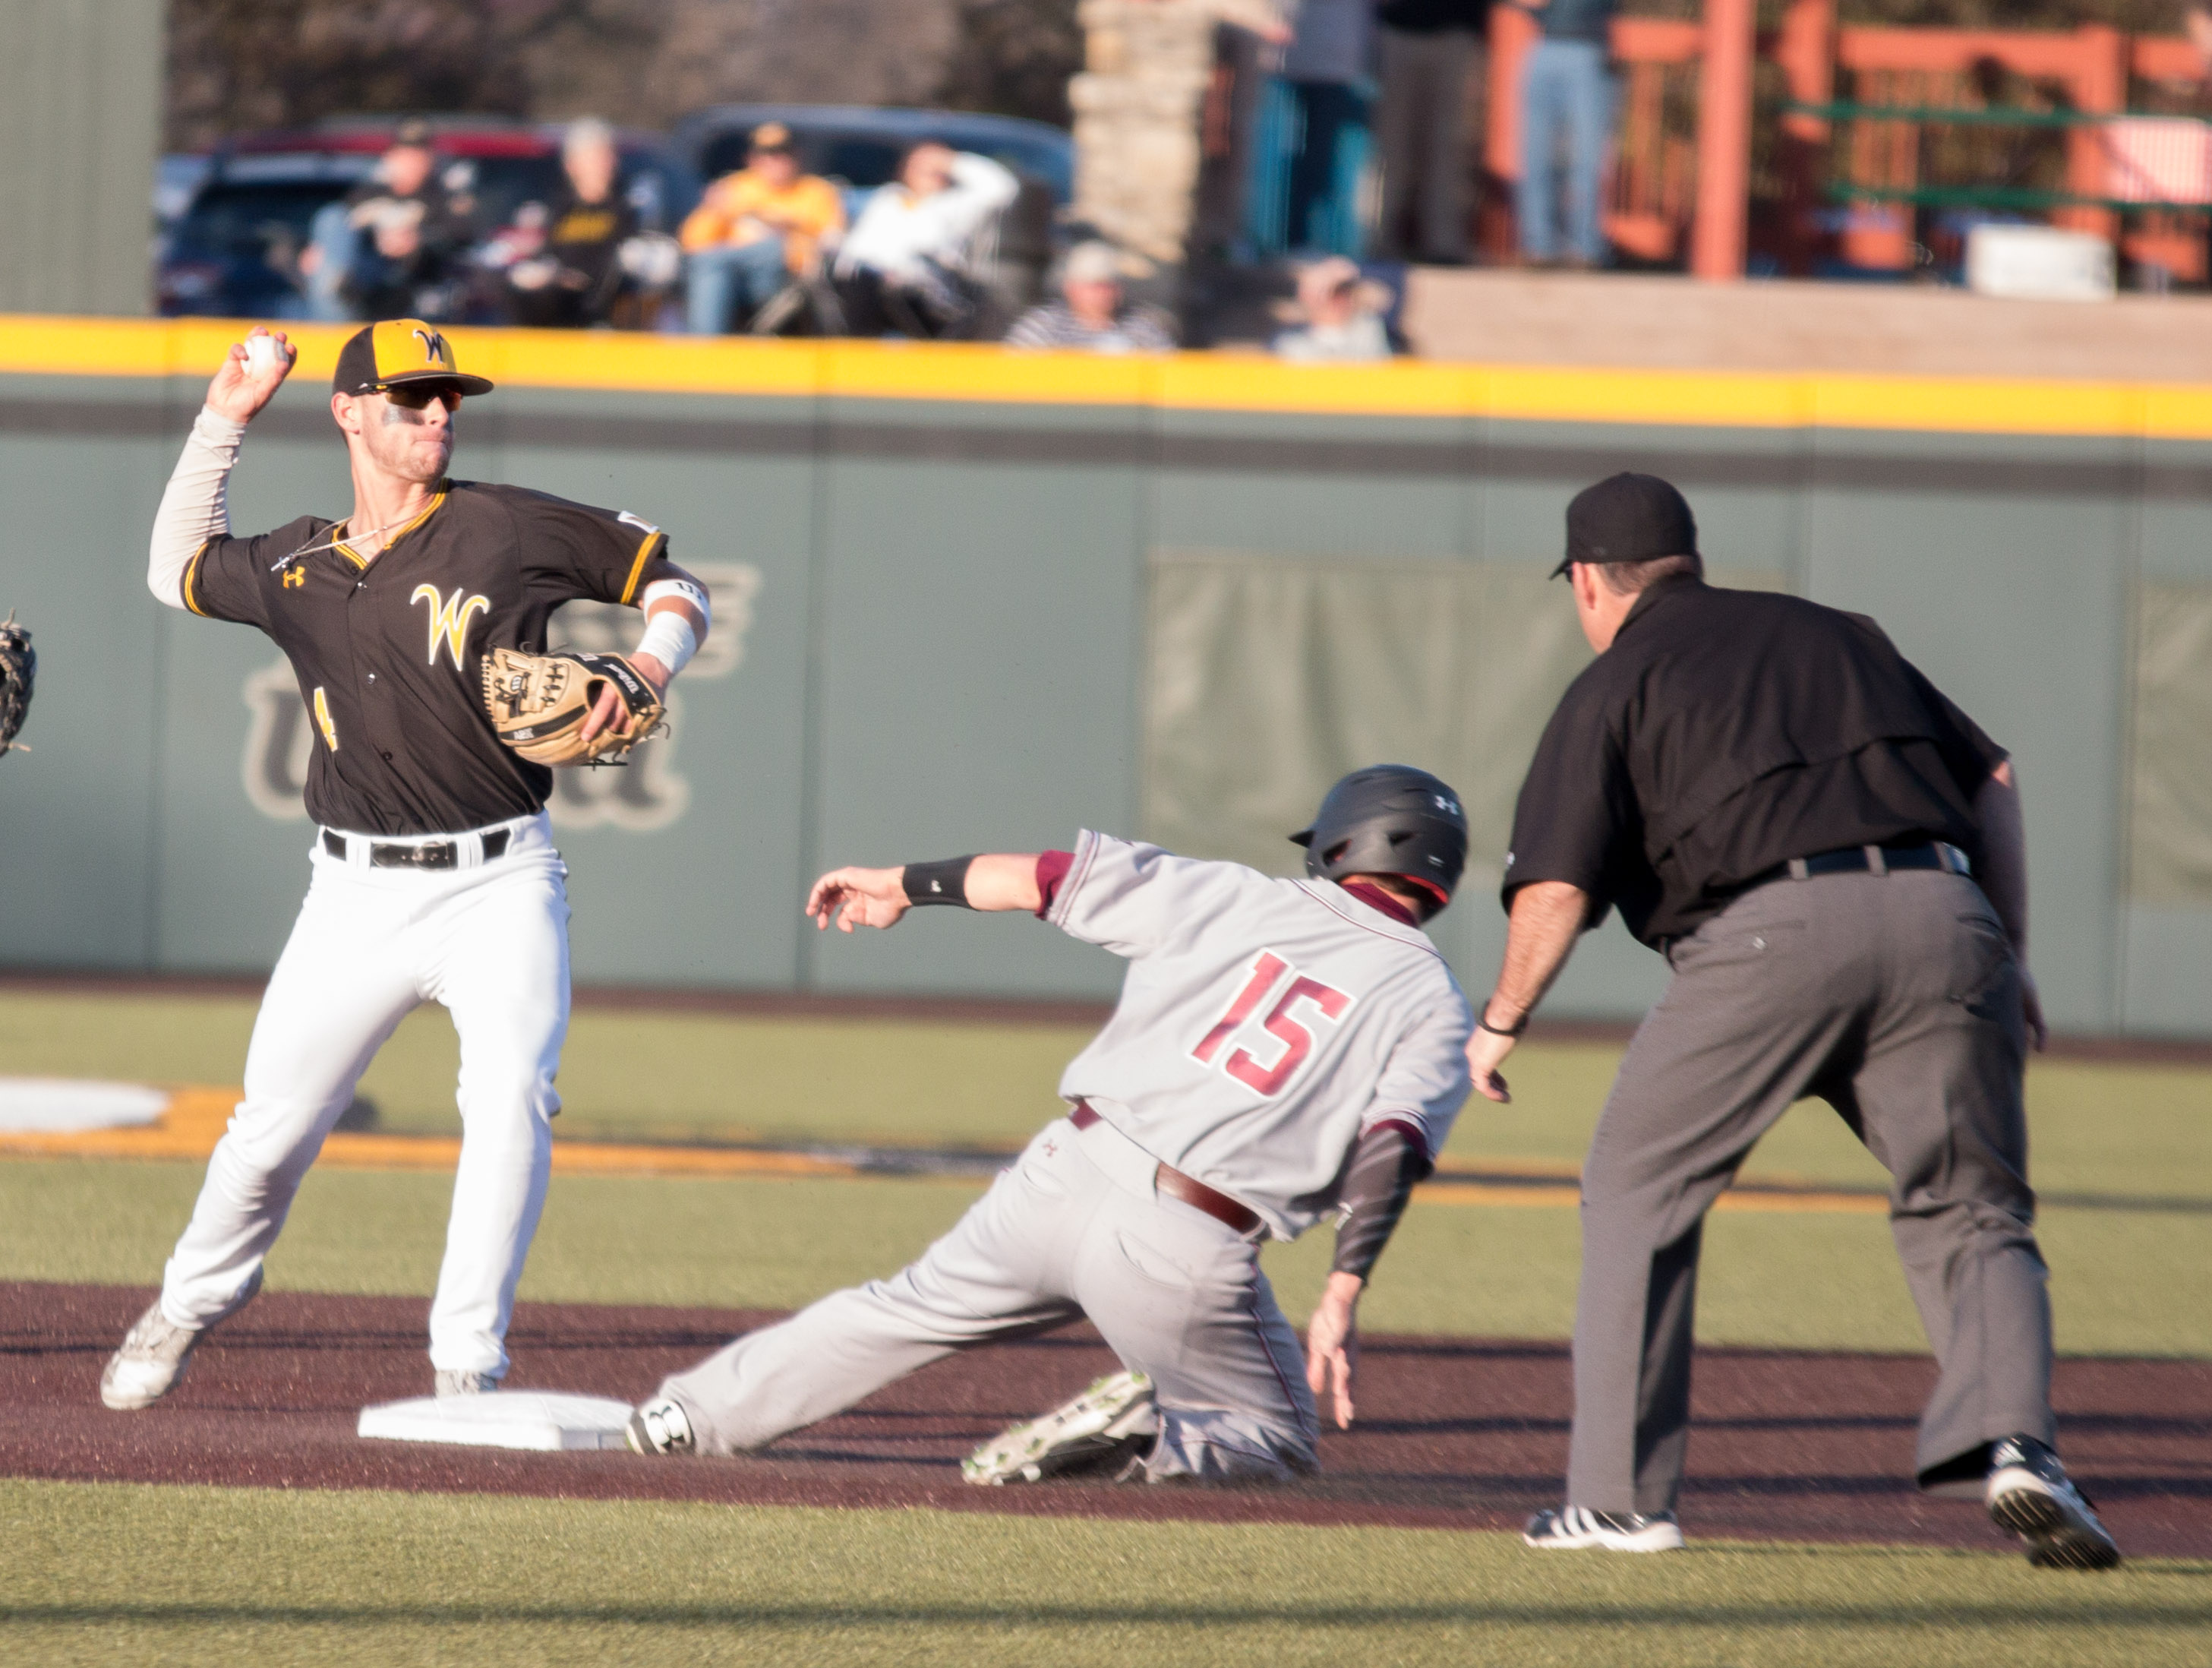 Redshirt Sophomore Jordan Boyer throws to first base after tagging a Southern Illinois player.